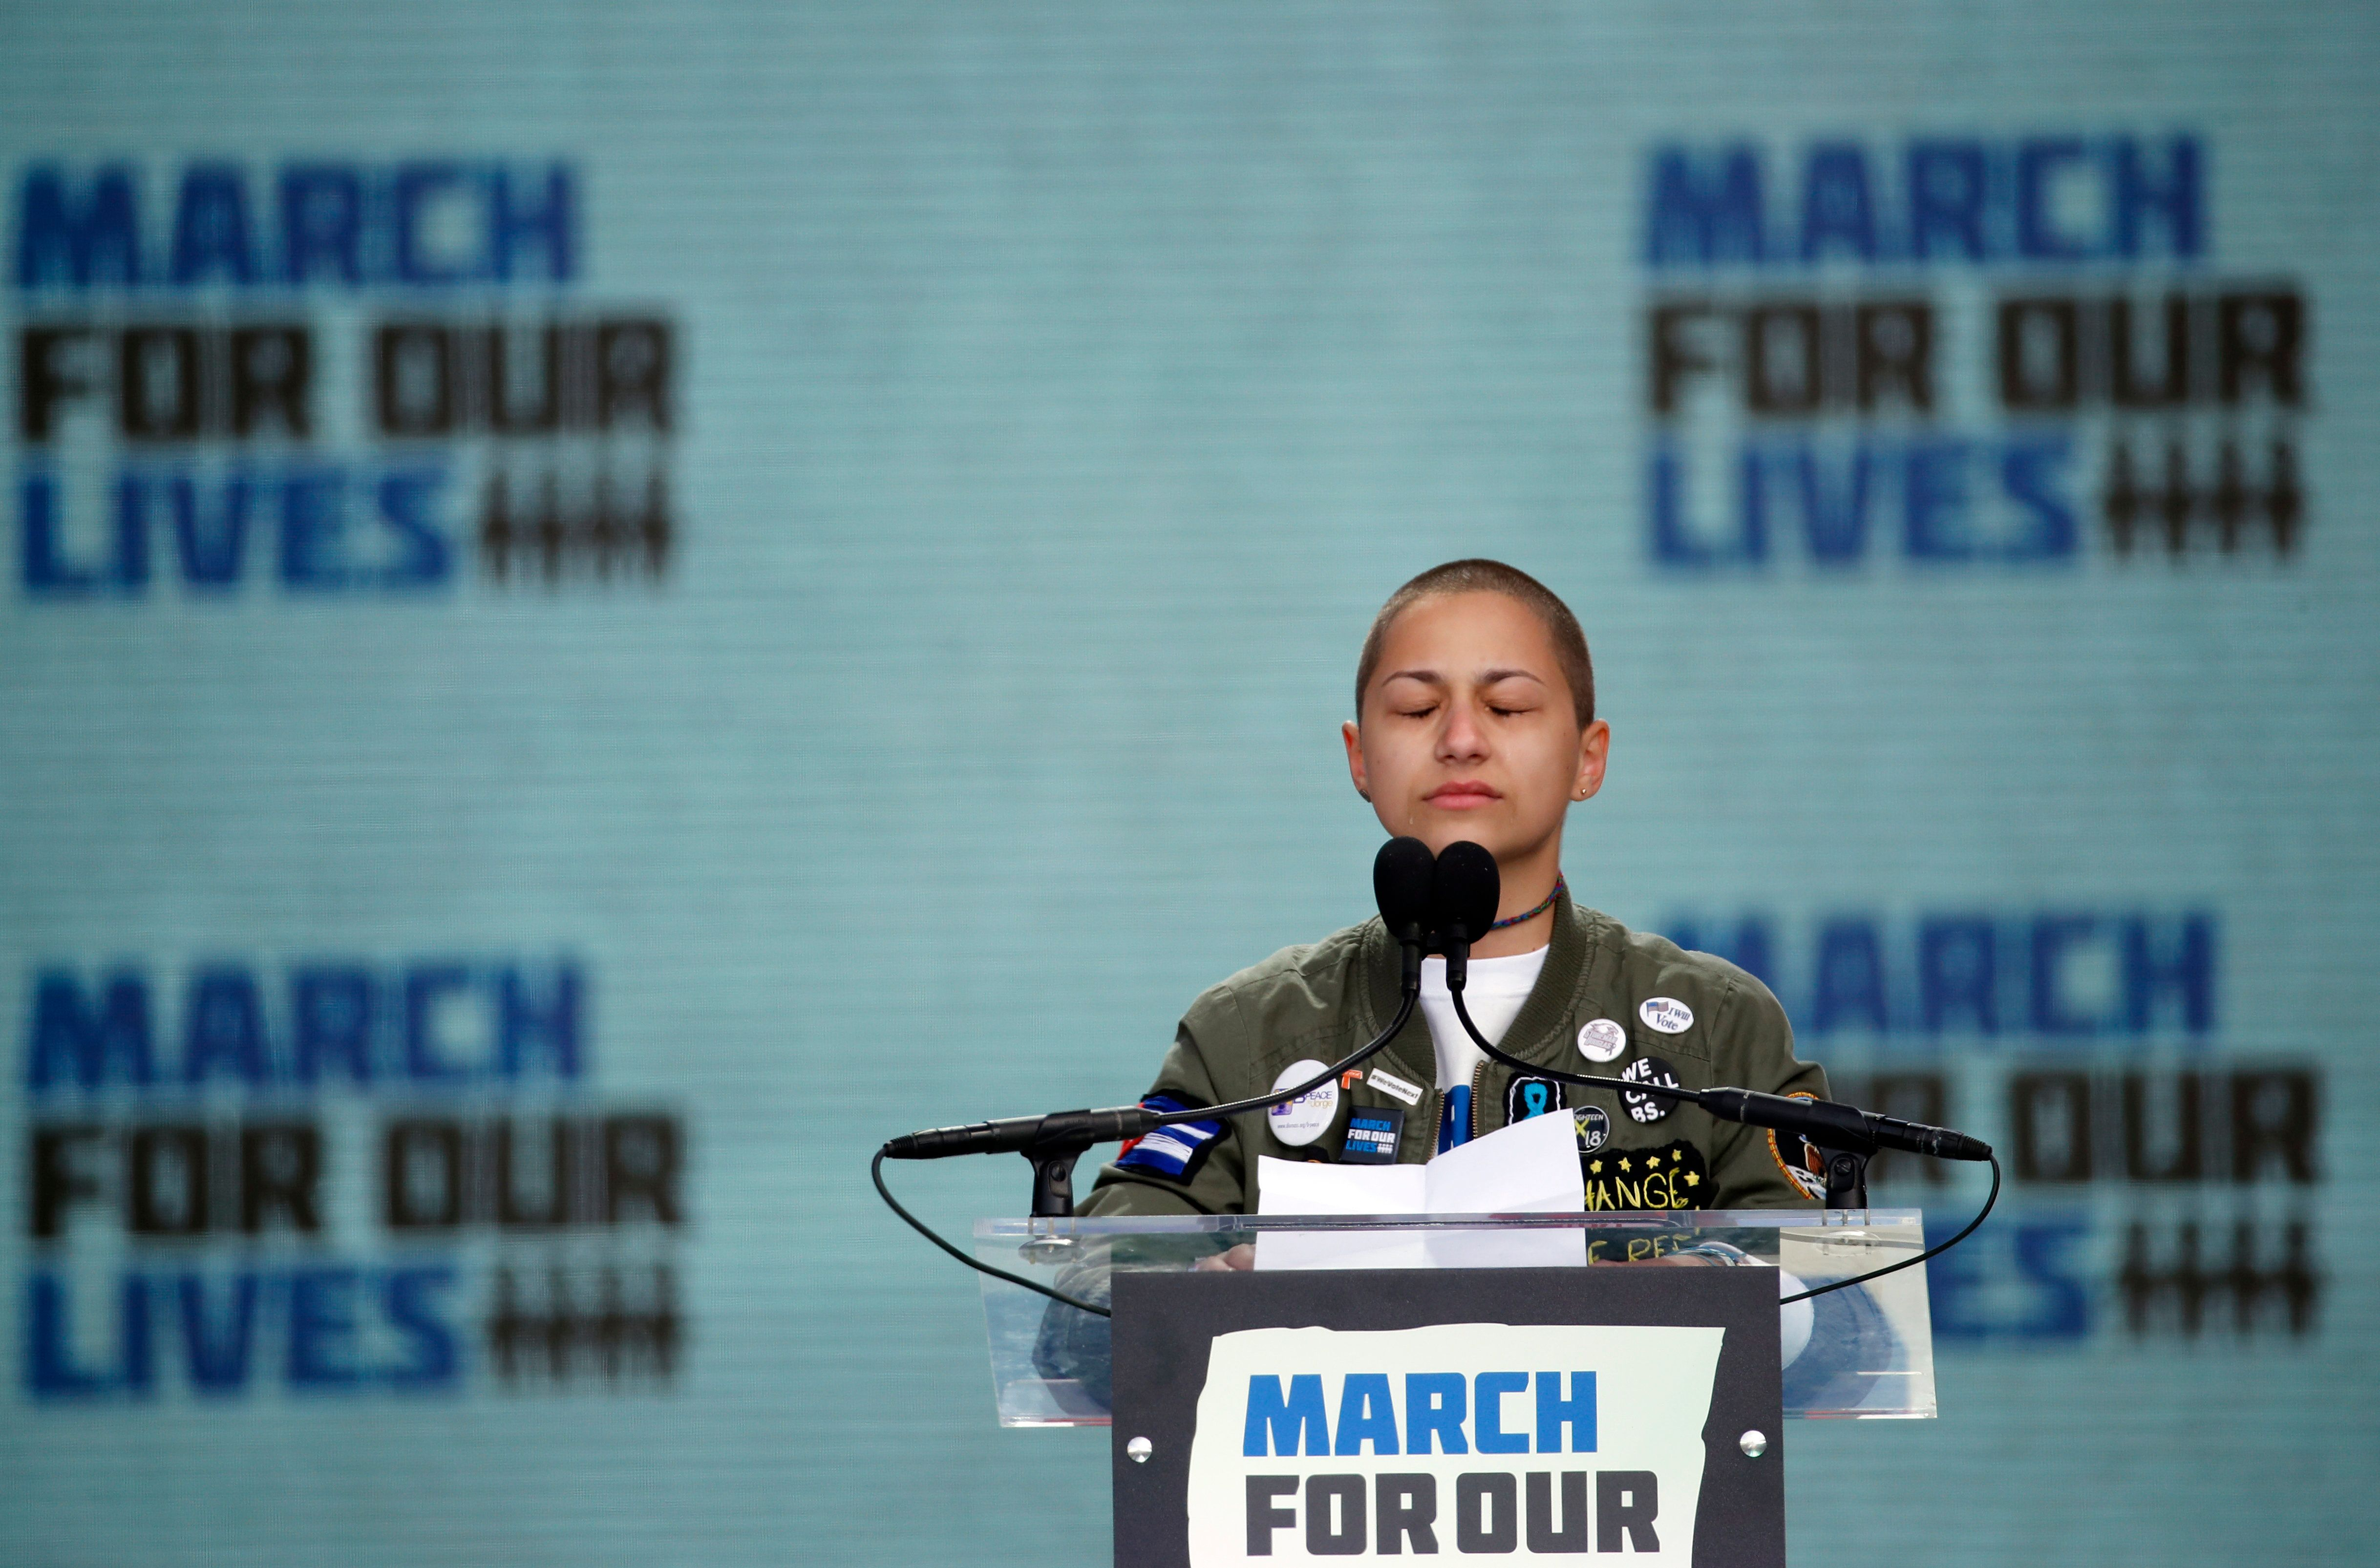 At a rally for gun control in Washington, D.C., in March, Emma Gonzalez, a survivor of the shooting at Marjory Stoneman Dougl